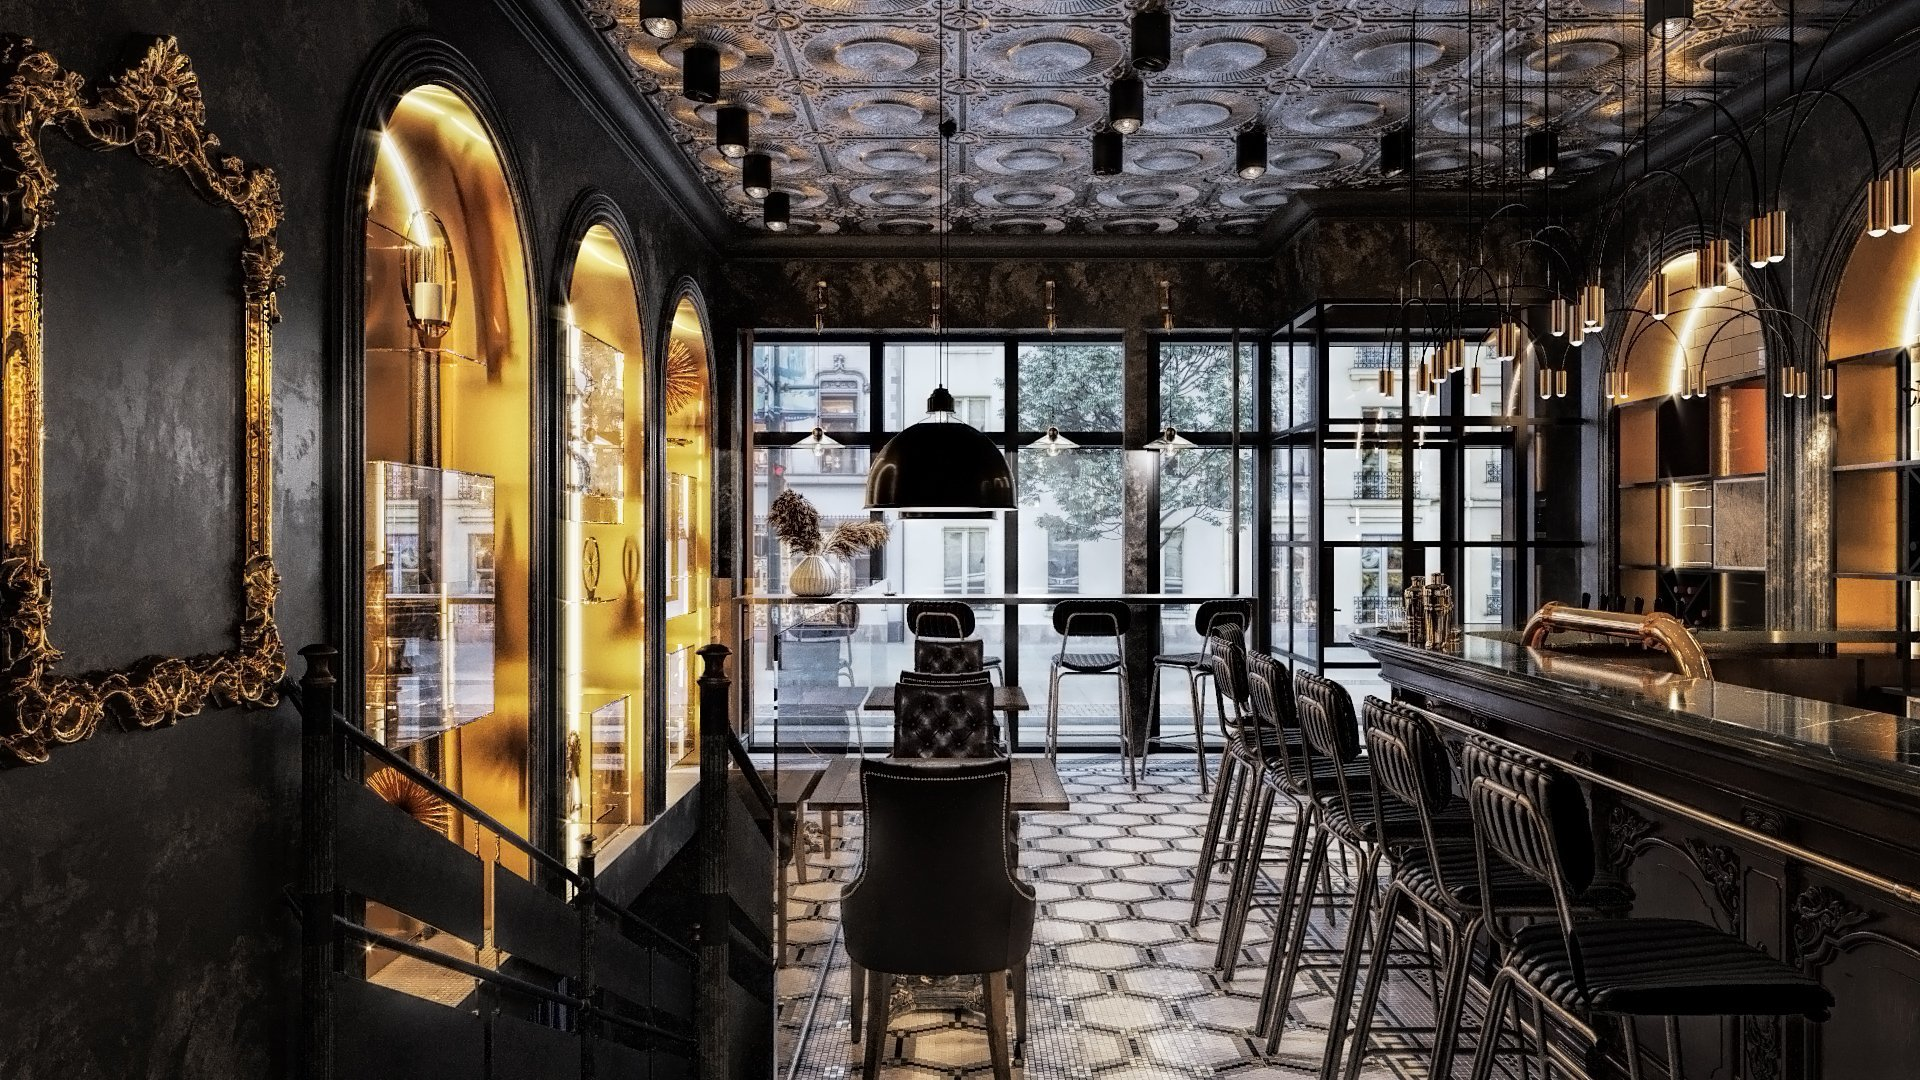 Detailed 3D Rendering of a Restaurant Interior